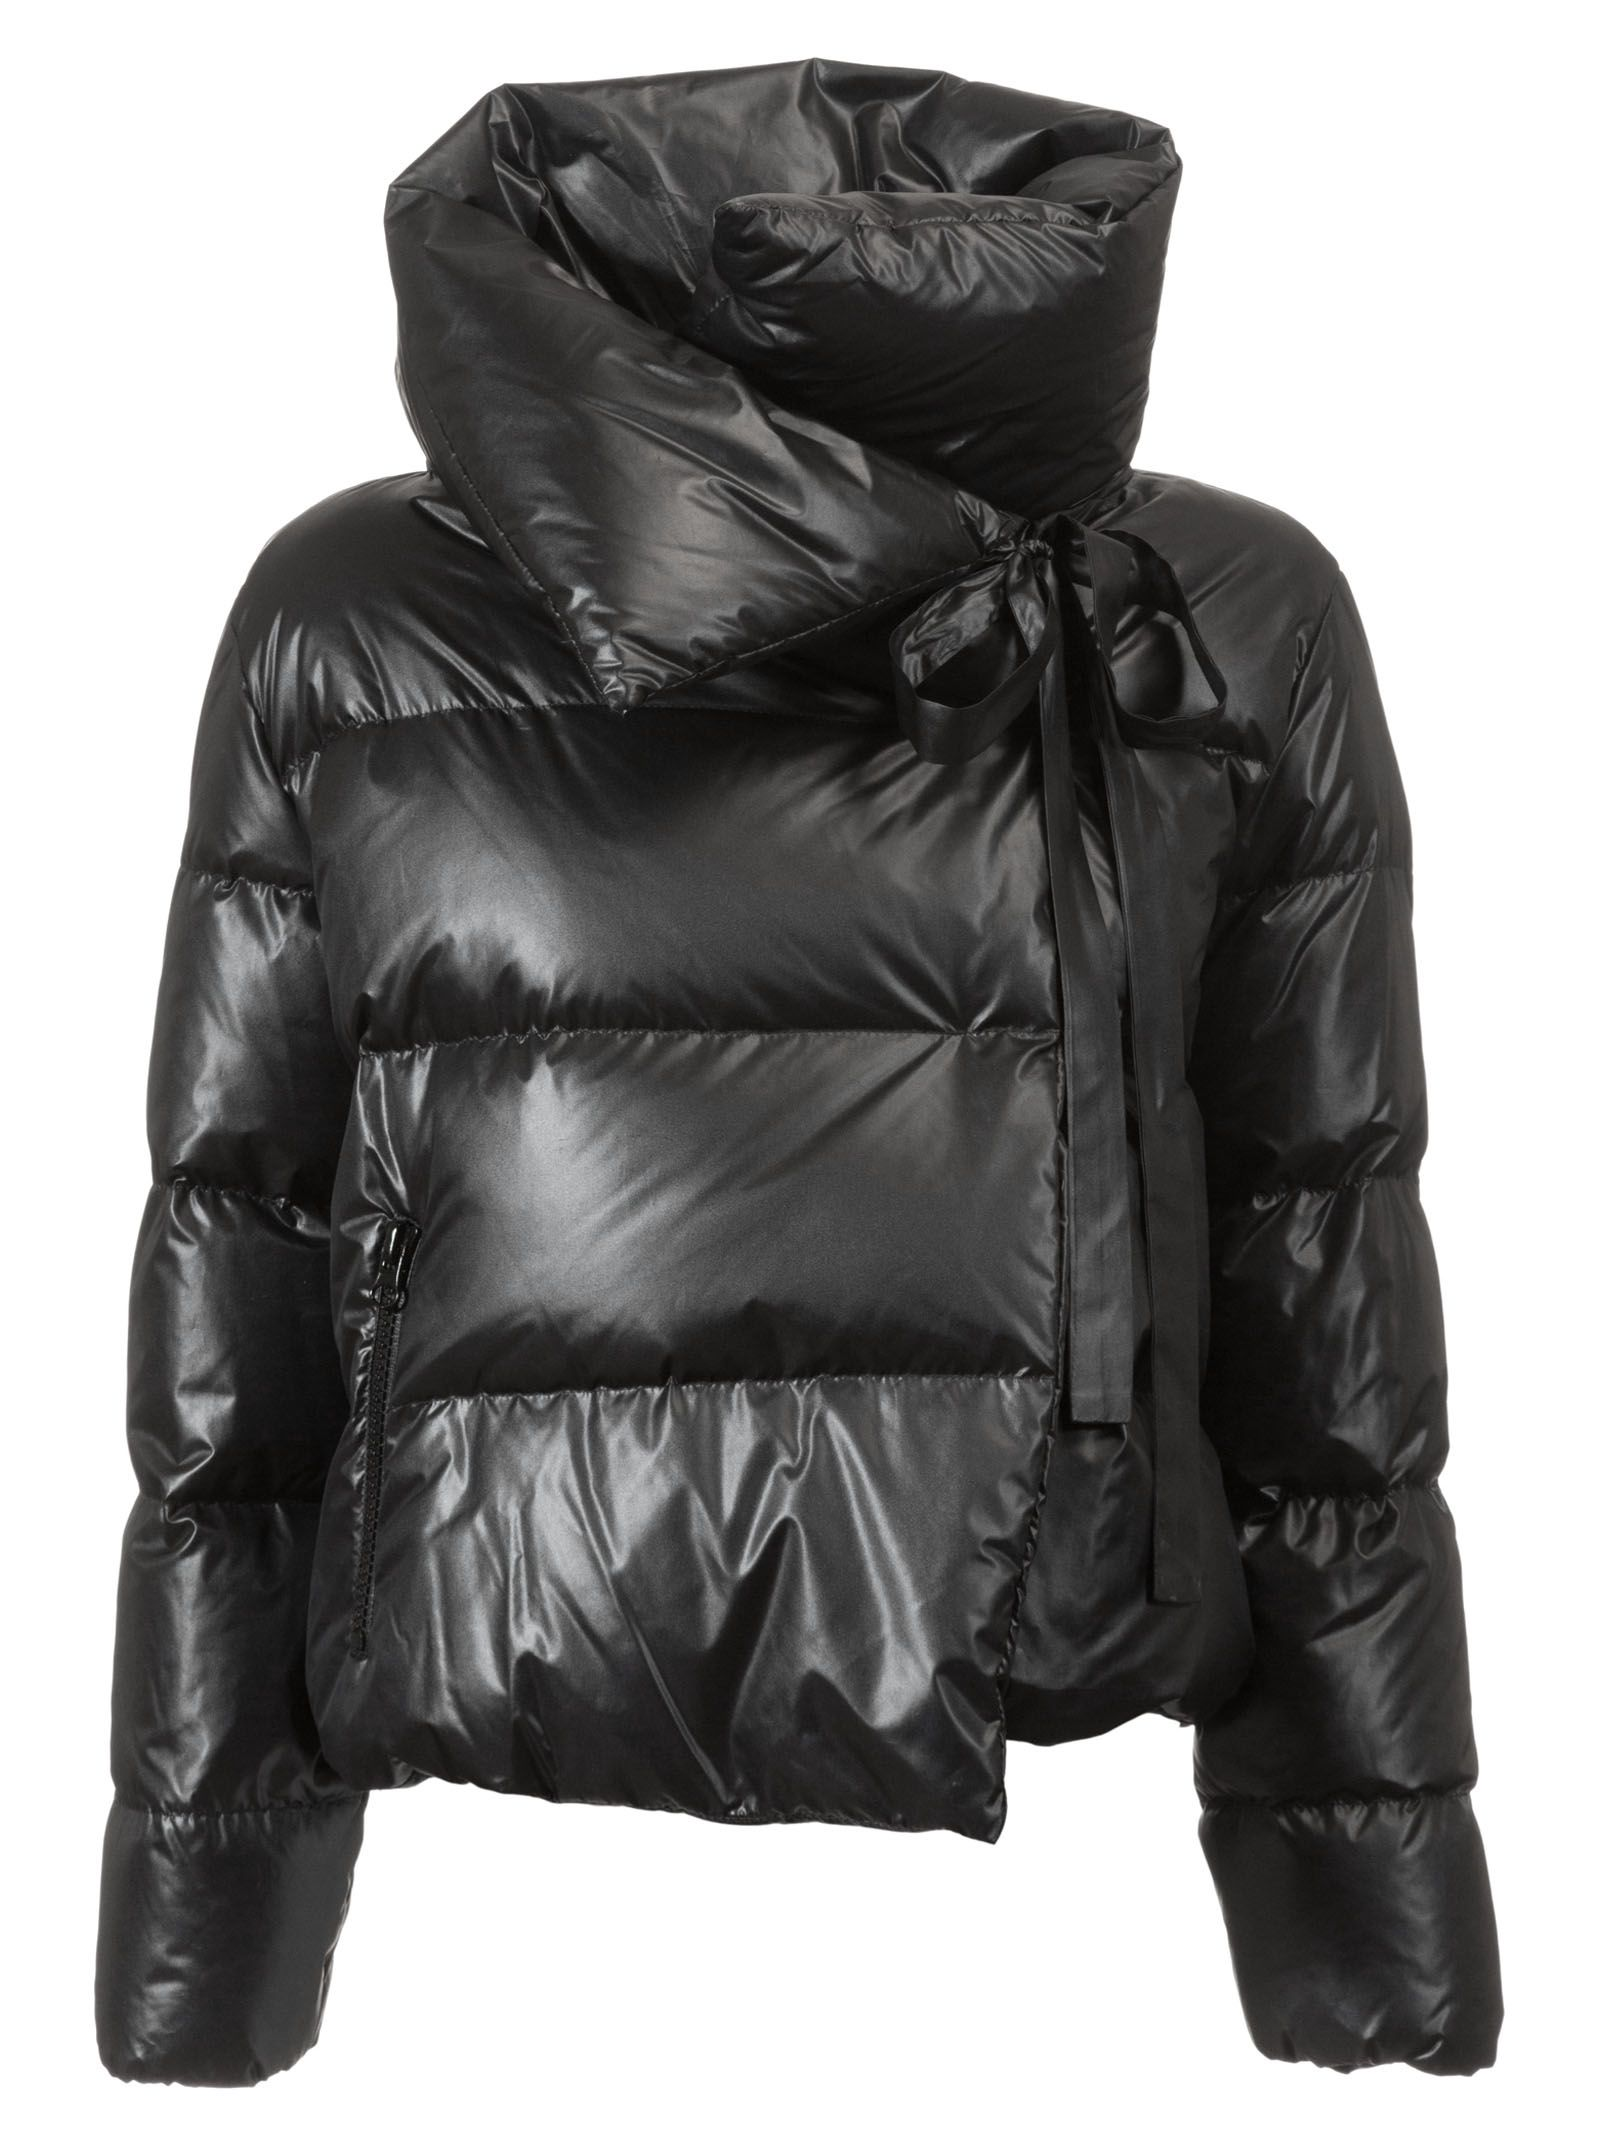 BACON CLOTHING Bacon Deluxe Cropped Padded Jacket in Black